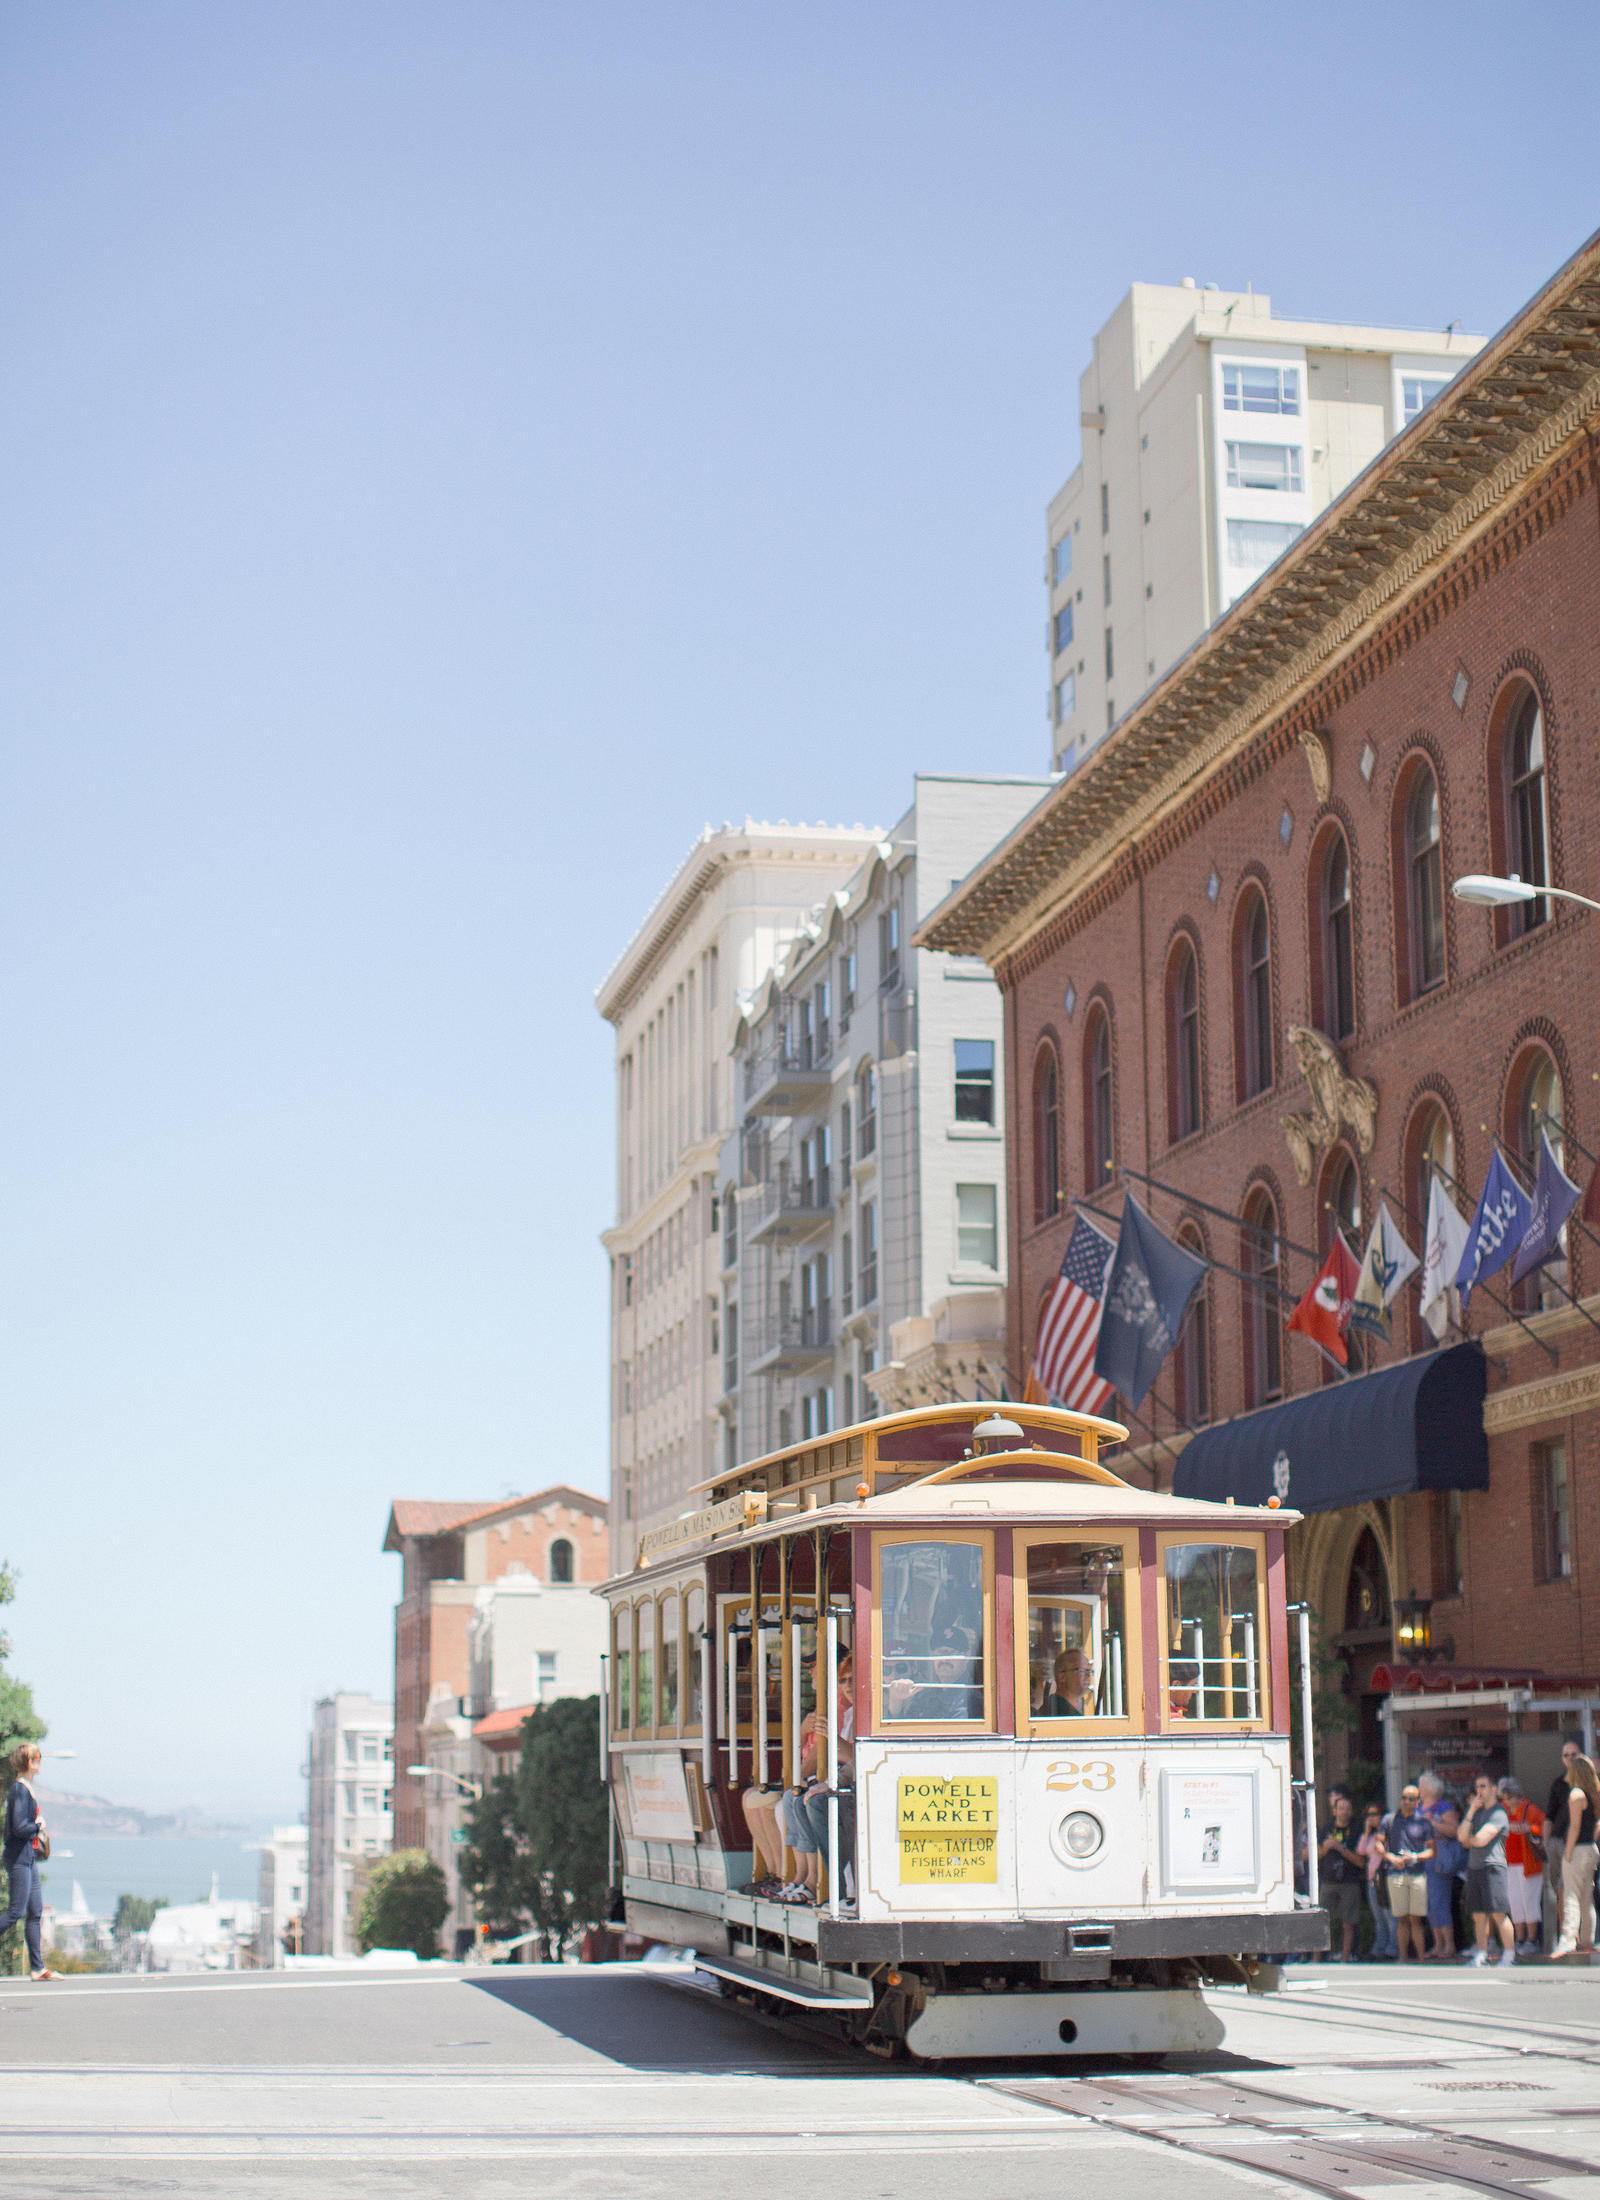 A street trolley in San Francisco.